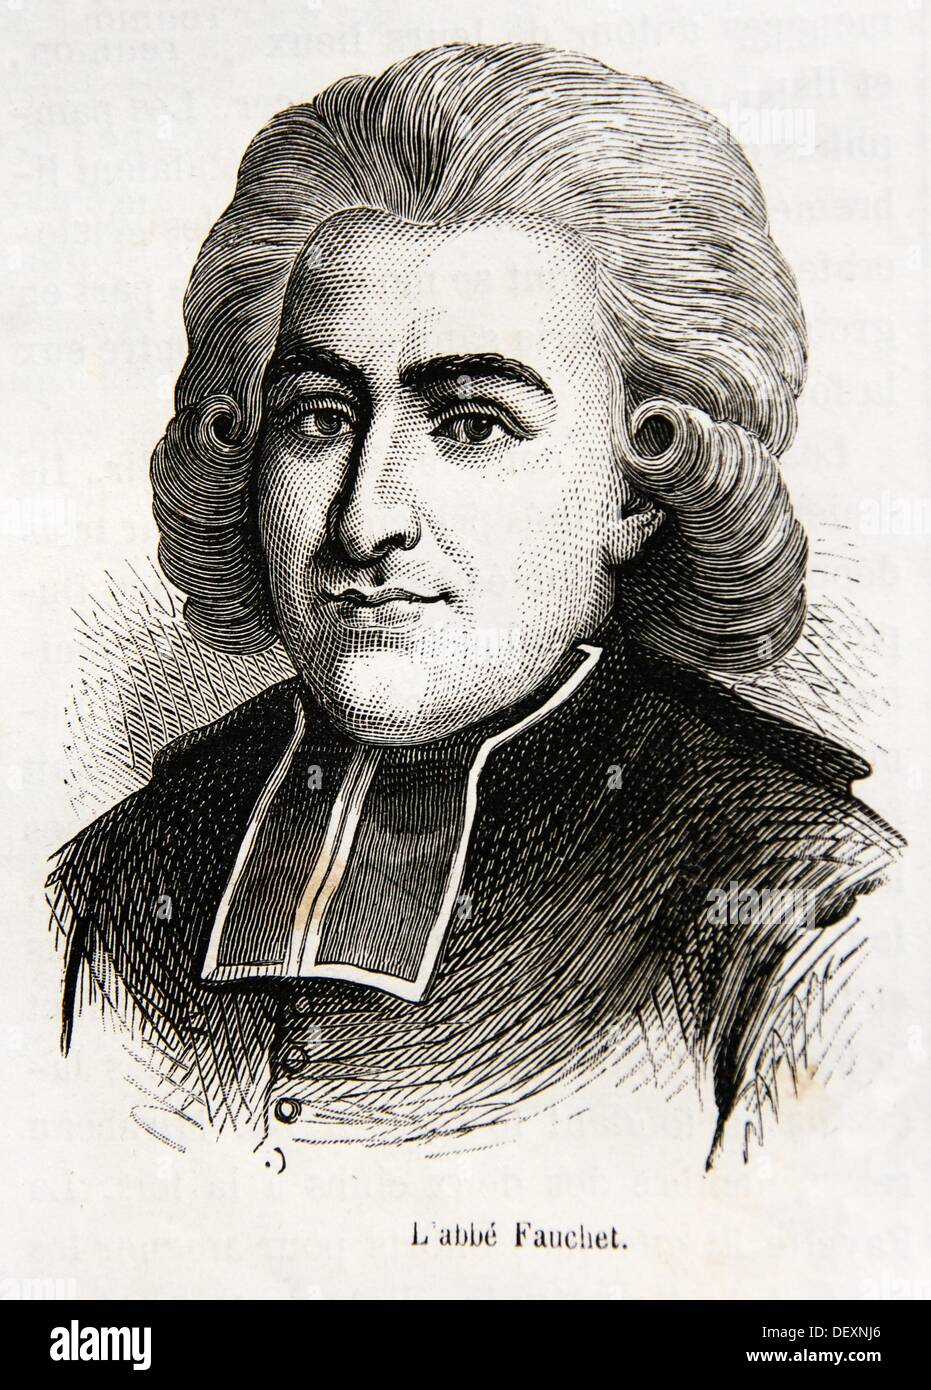 Claude Fauchet (22 September 1744 - 31 October 1793), French revolutionary bishop - Stock Image